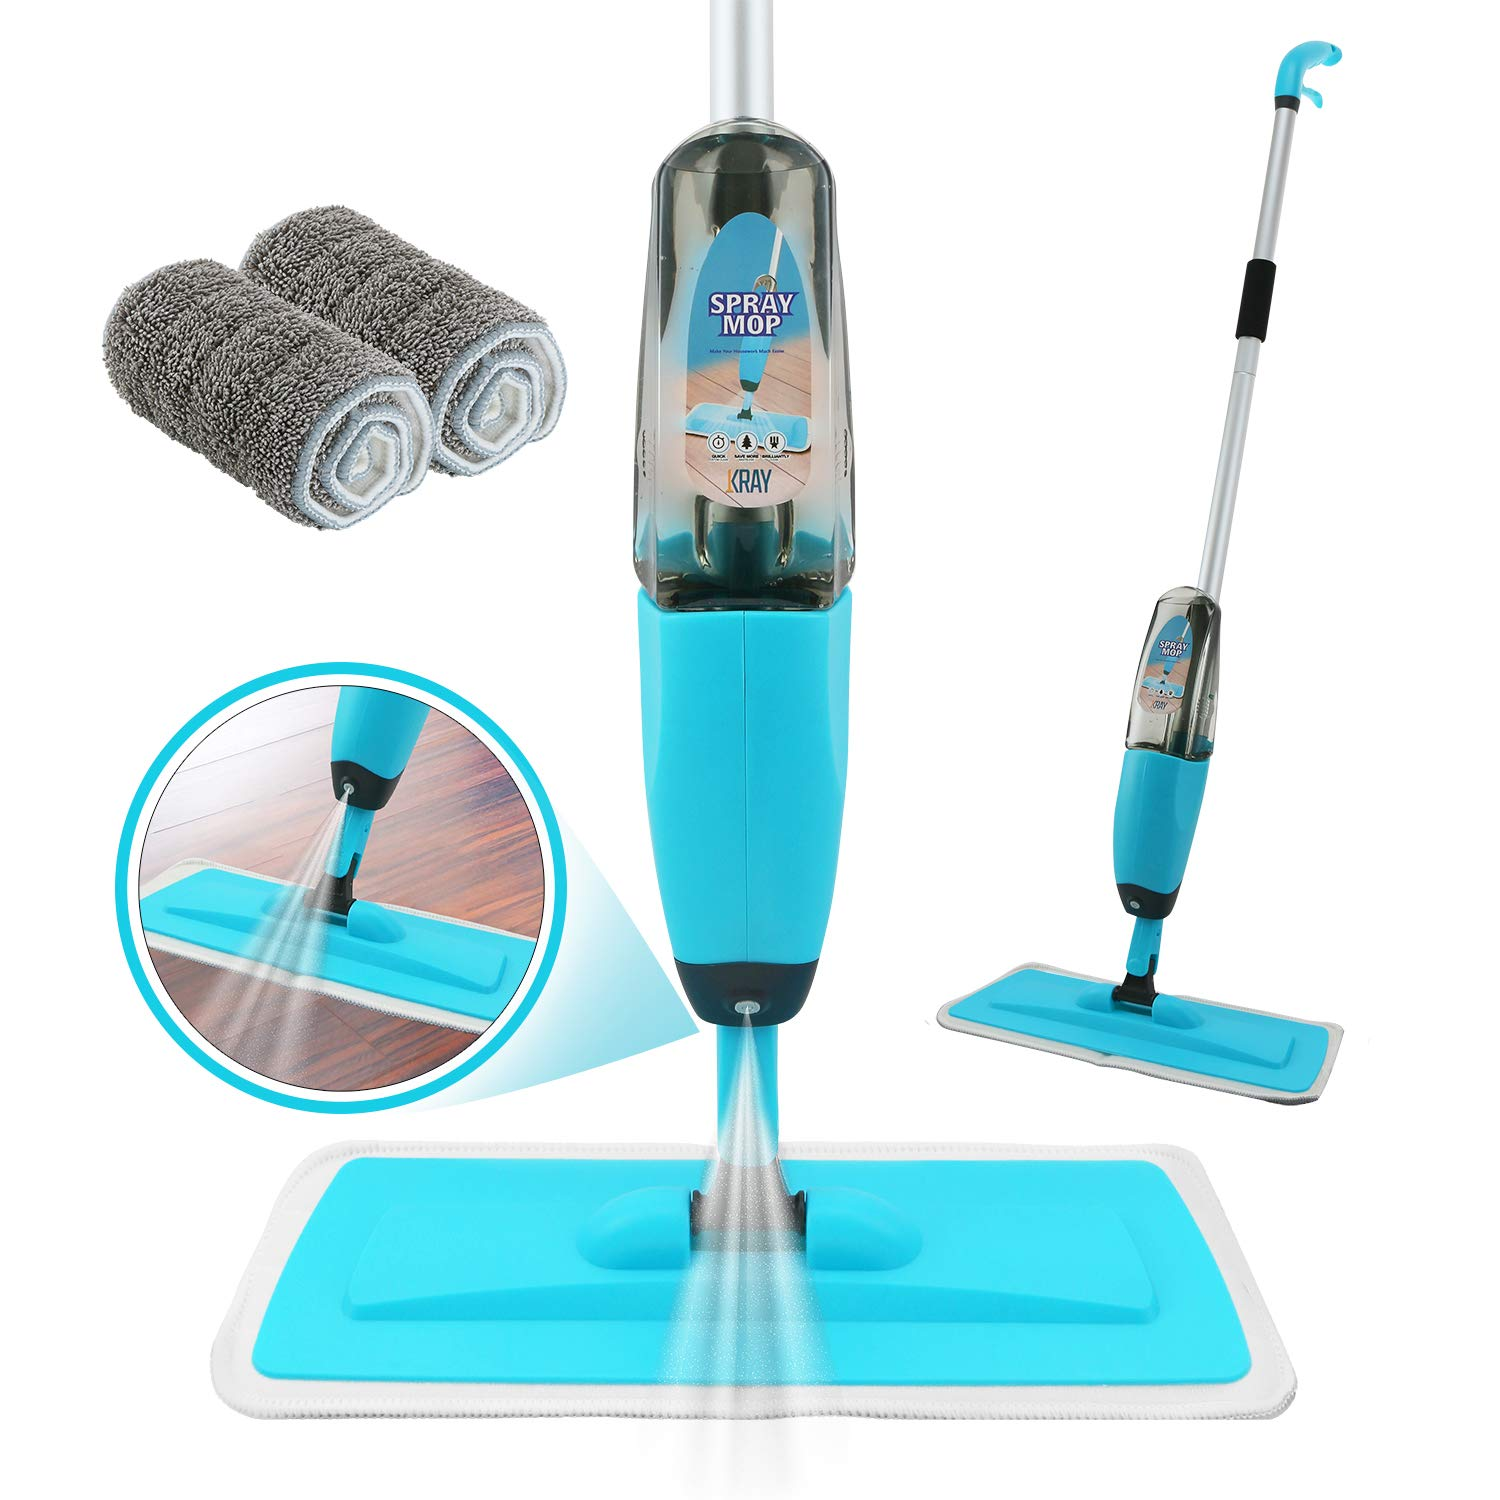 Spray Mop Strongest Heaviest Duty Mop - Best Floor Mop Easy To Use - 360 Spin Non Scratch Microfiber Mop With Integrated Sprayer - Includes Refillable 700ml Bottle & 2 Reusable Microfiber Pads by Kray by Kray (Image #9)